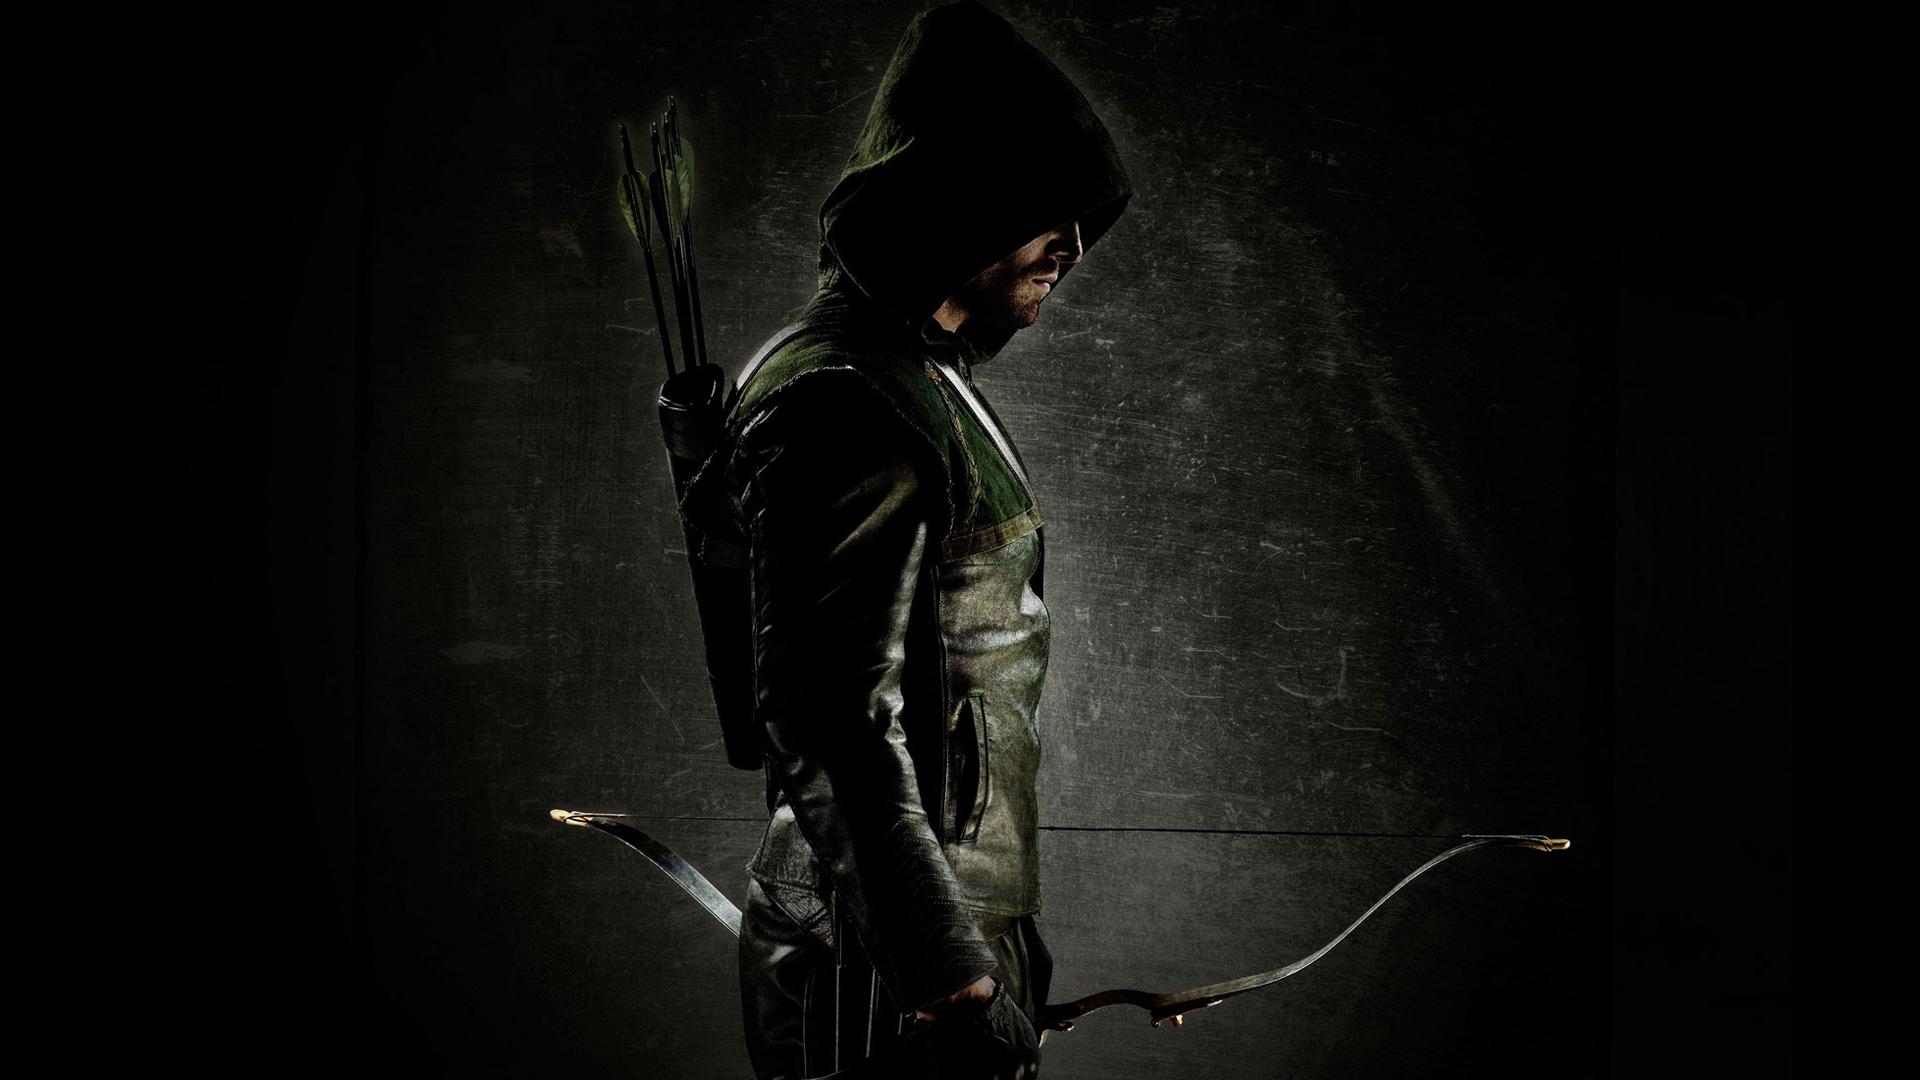 Oliver is Alive – So What's Next For 'Arrow'?